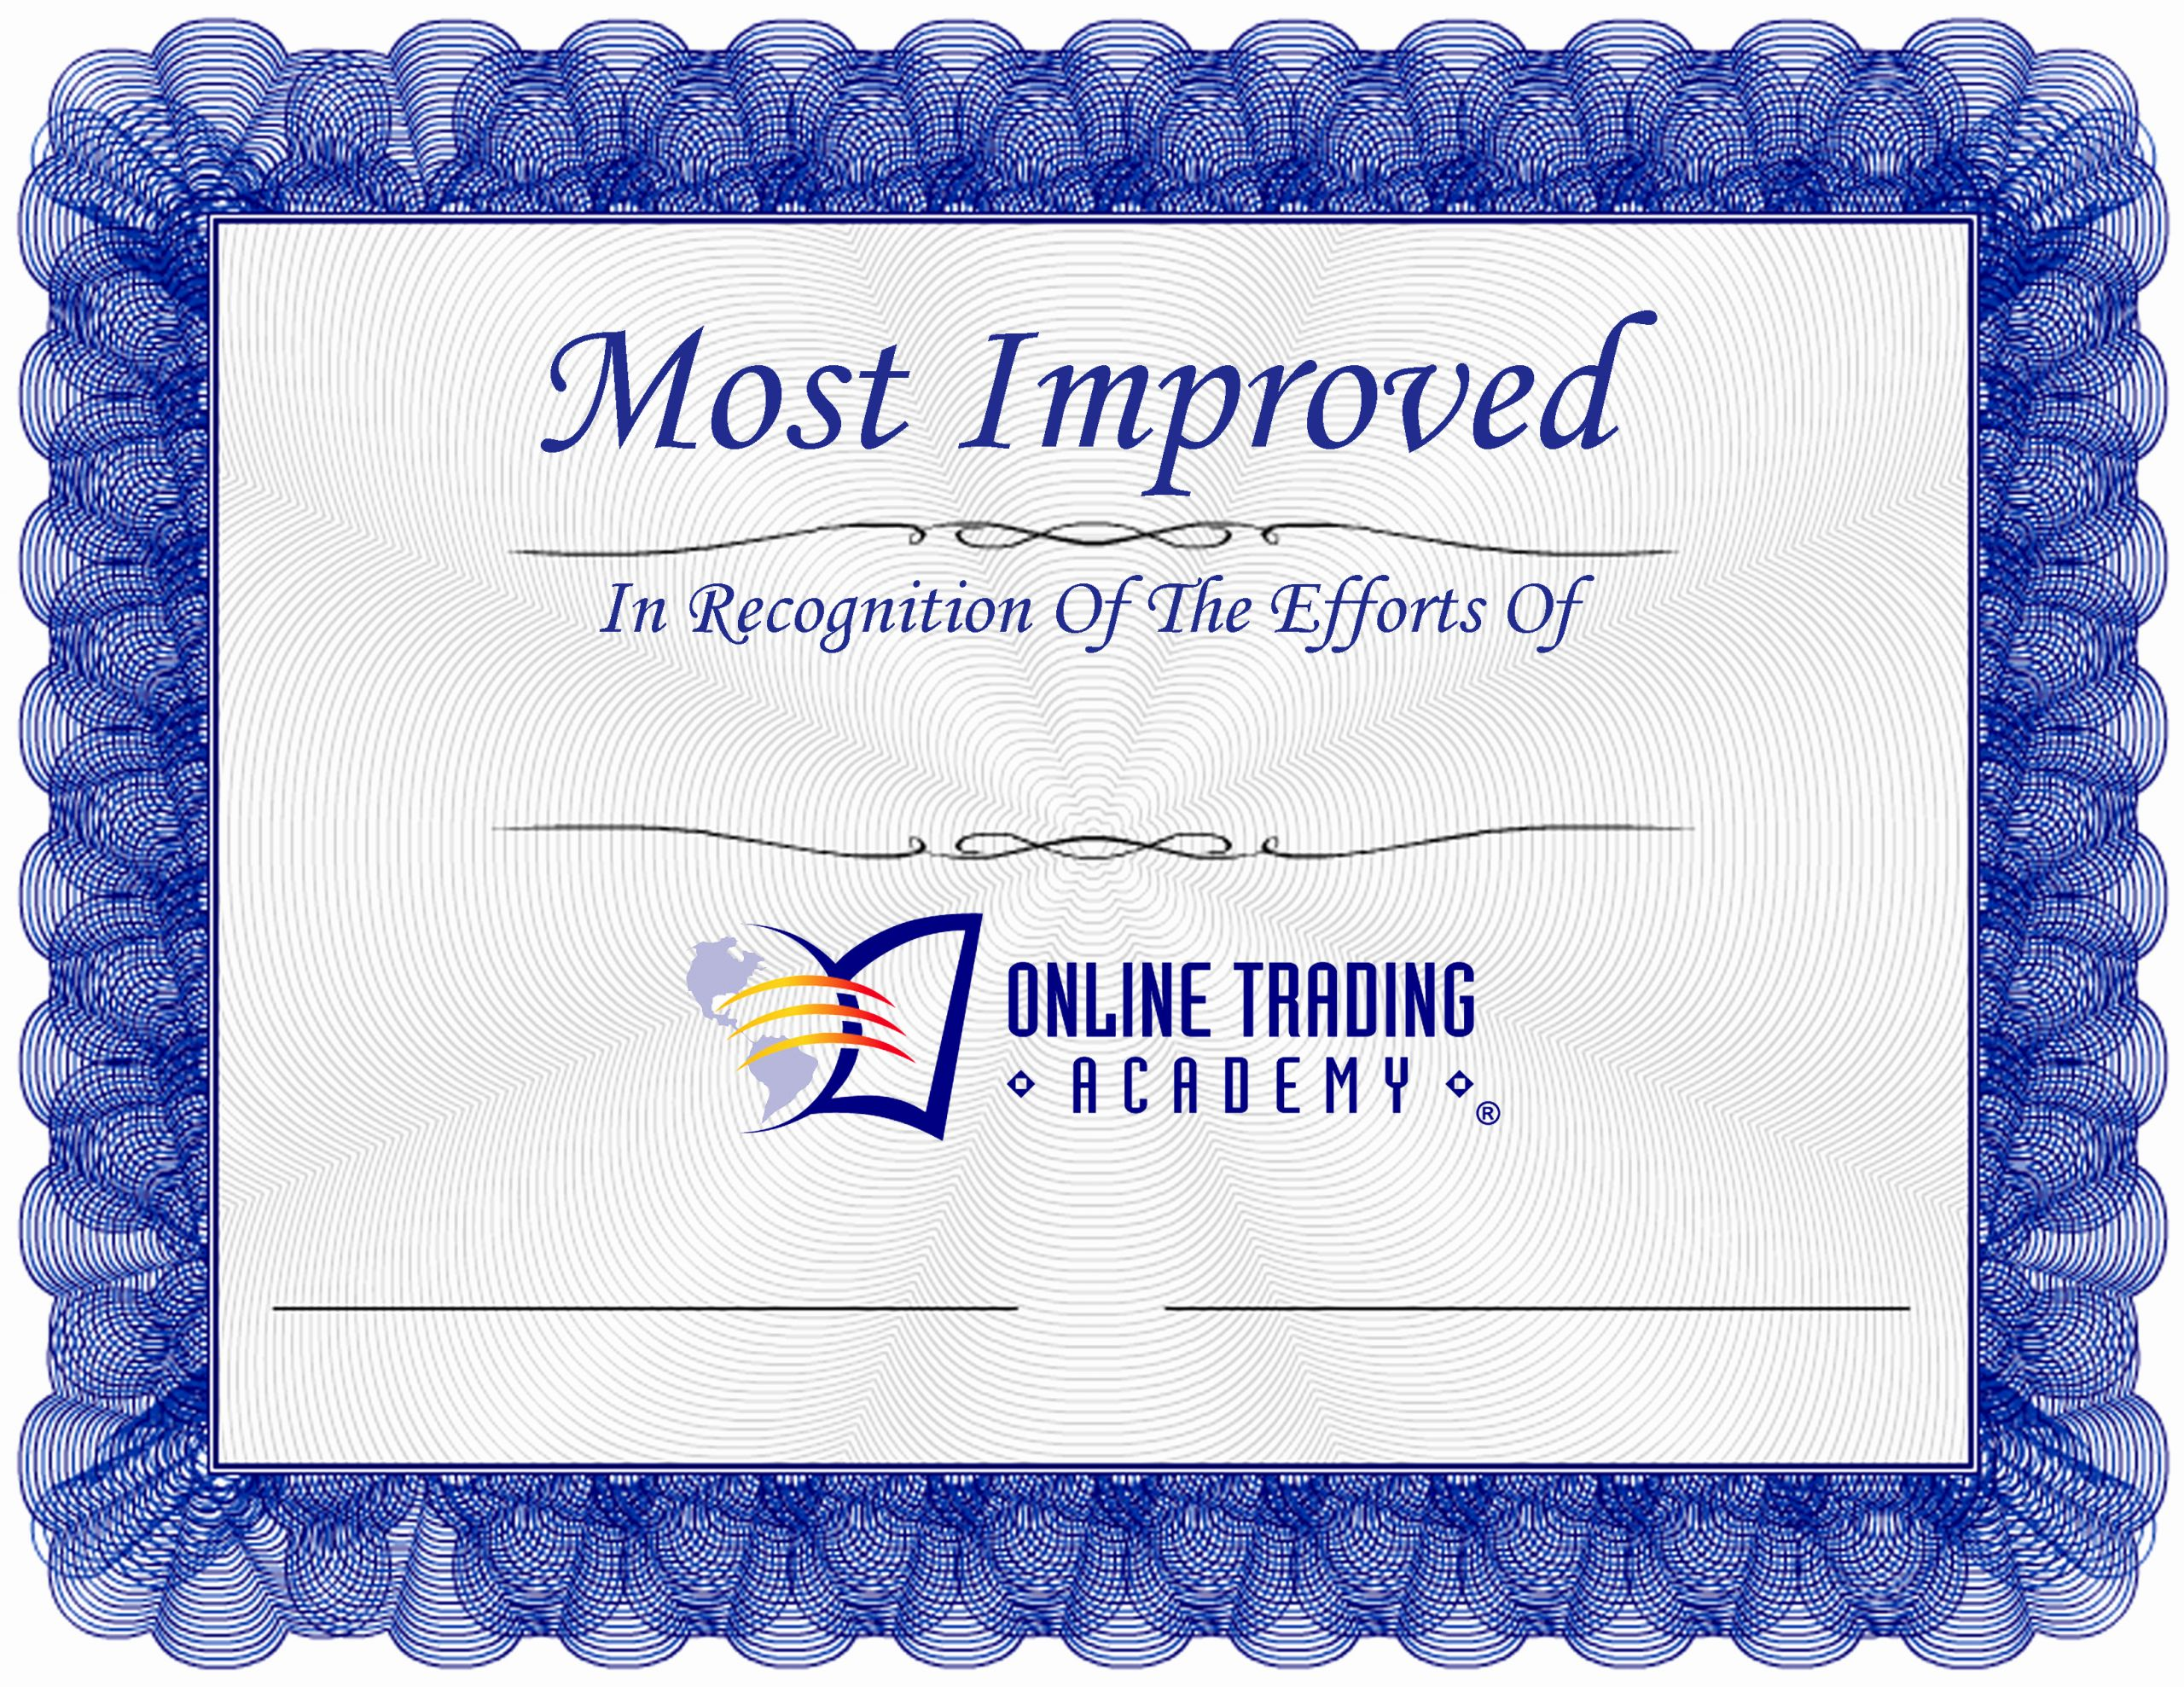 Most Improved Certificate Wording Awesome Line Trading Academy Most Improved Award